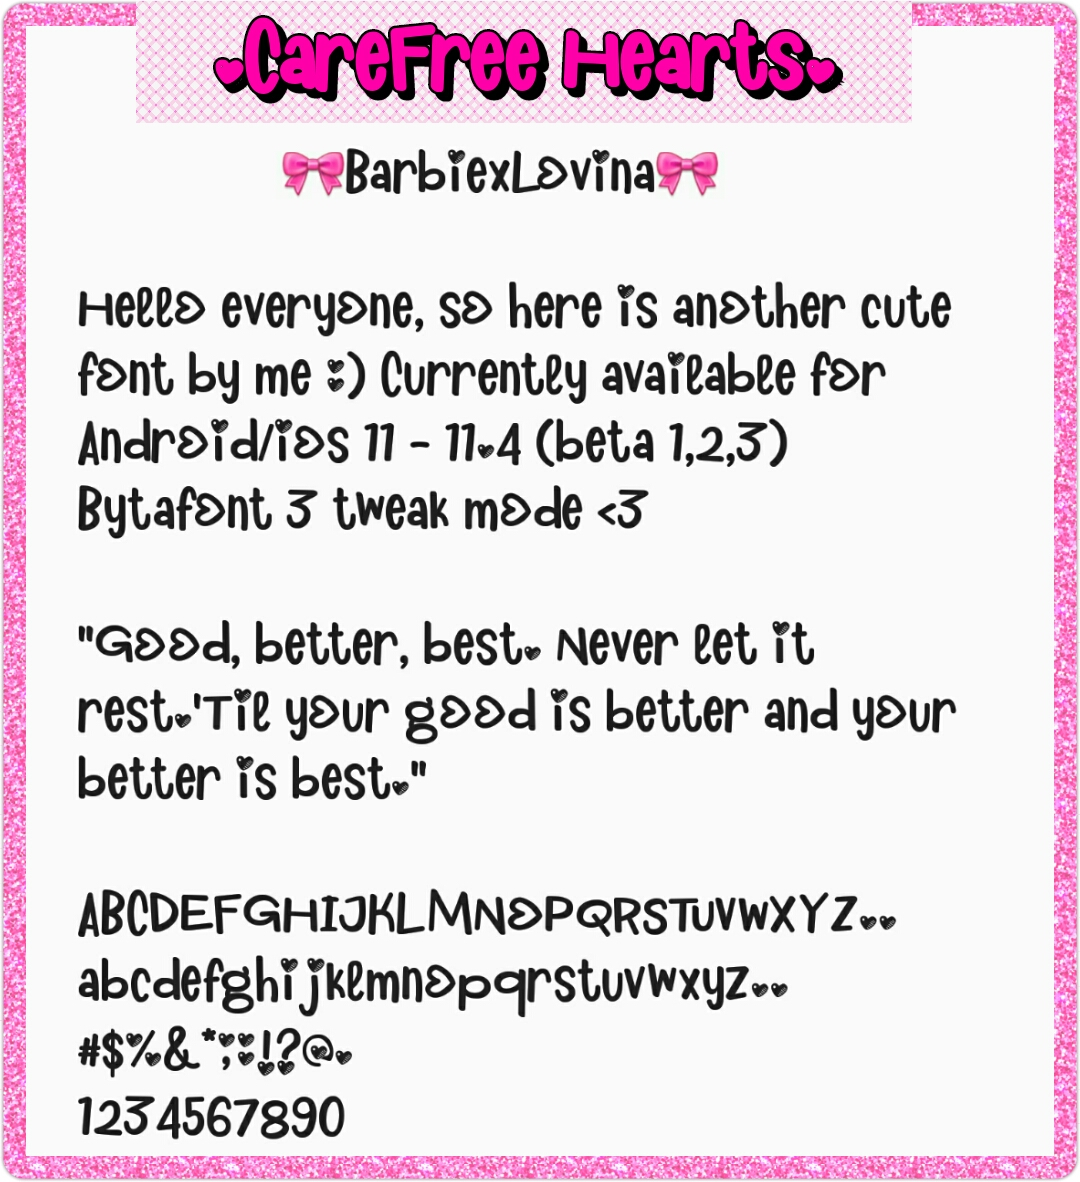 How To Use Bytafont 2 Girly Font